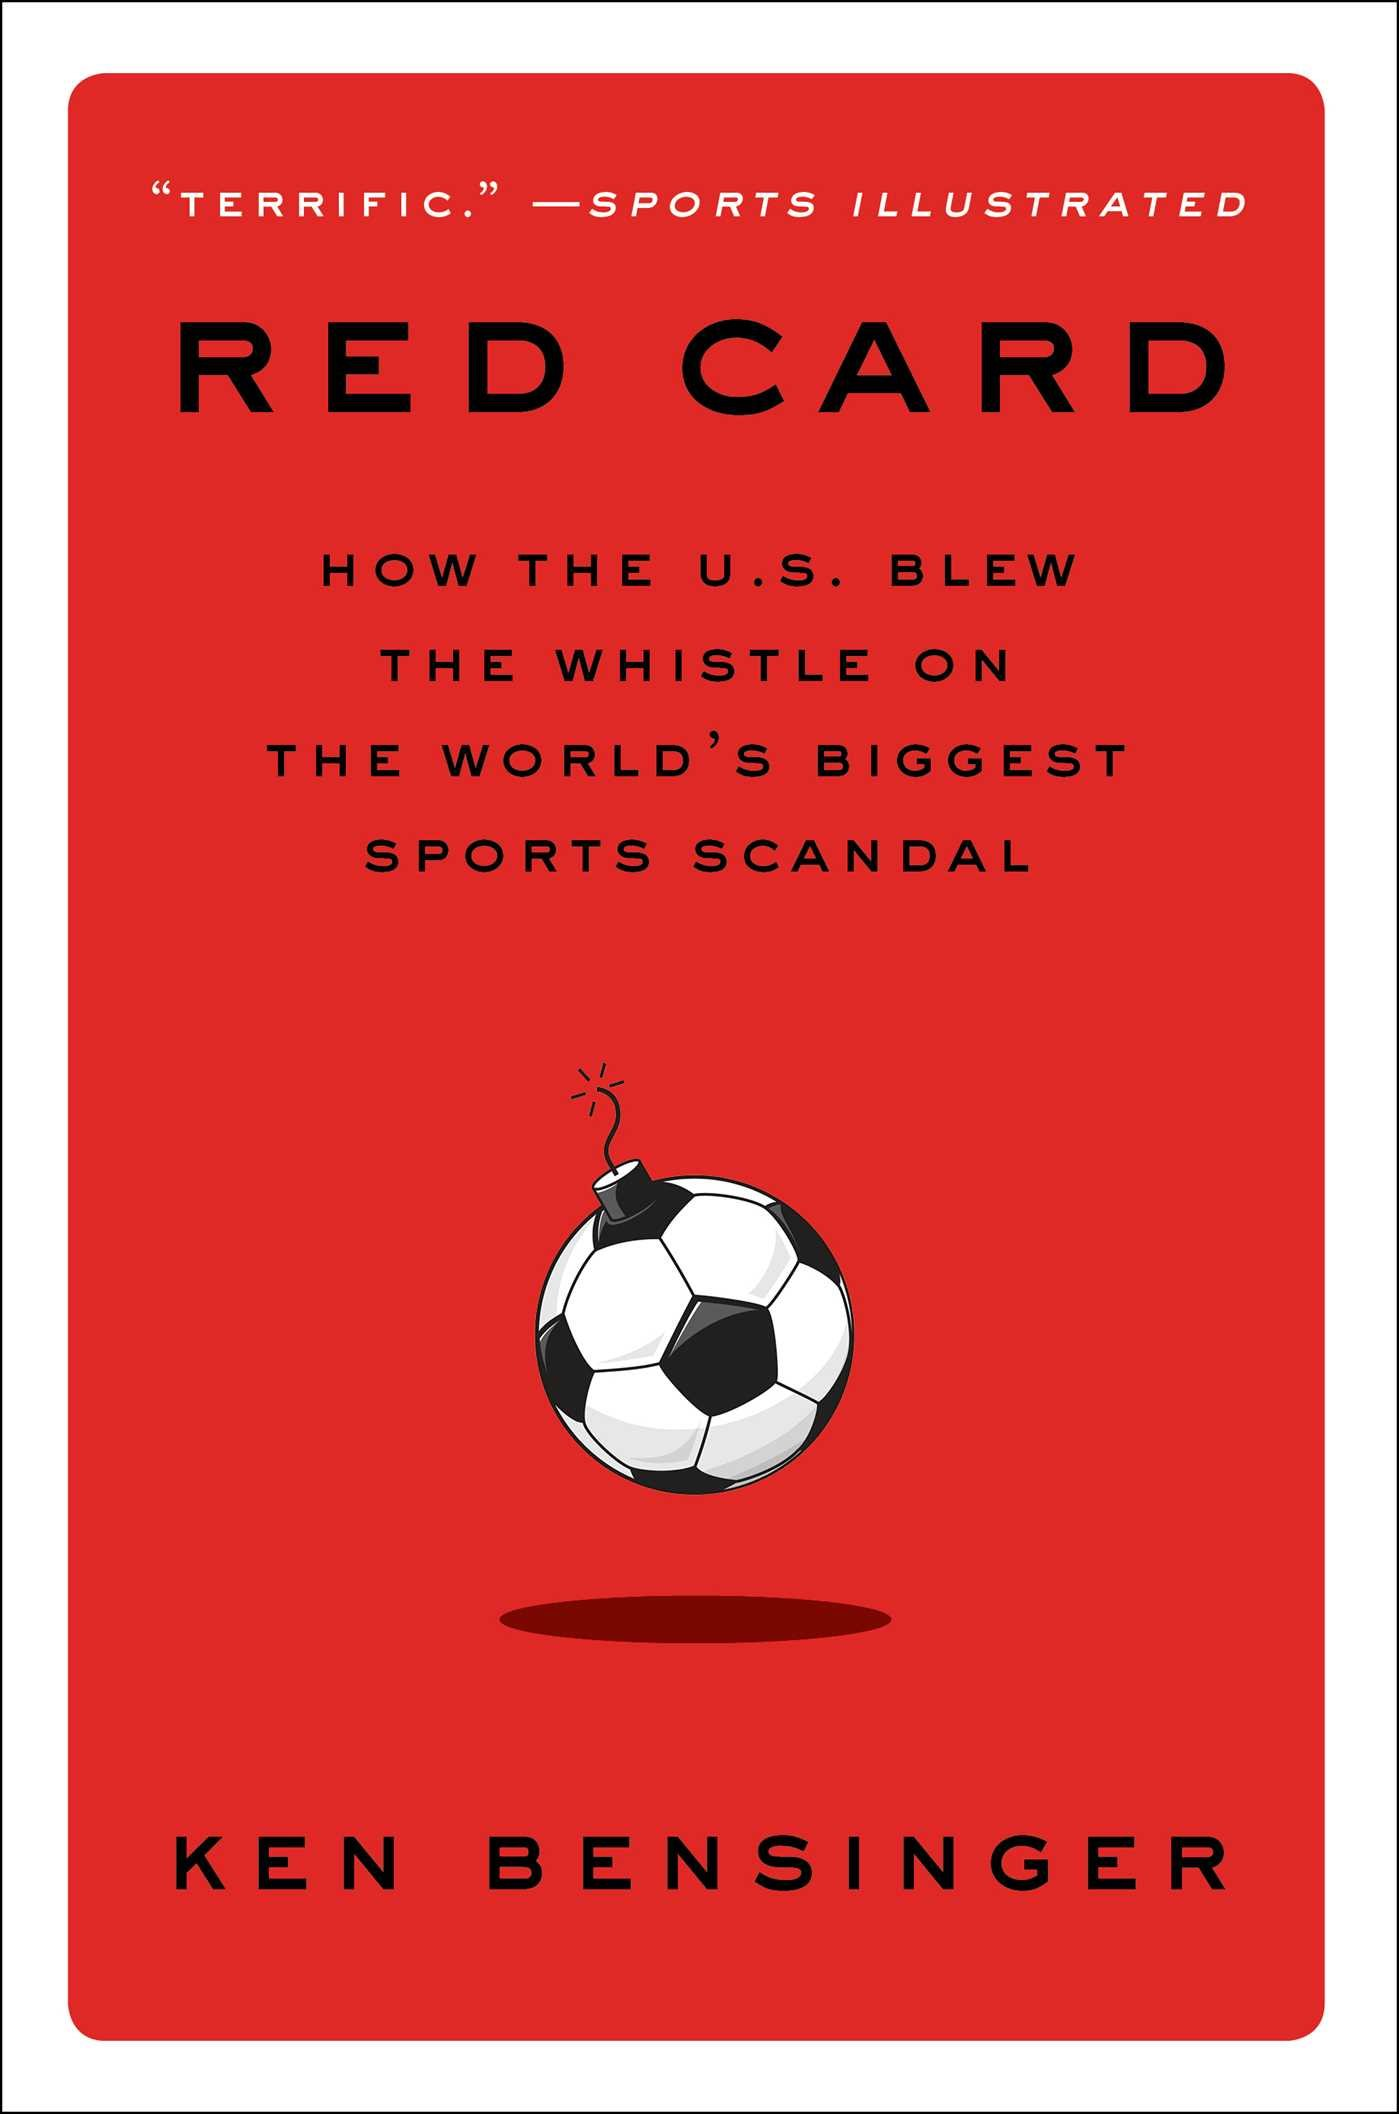 Red Card: How the U.S. Blew the Whistle on the World's Biggest Sports Scandal